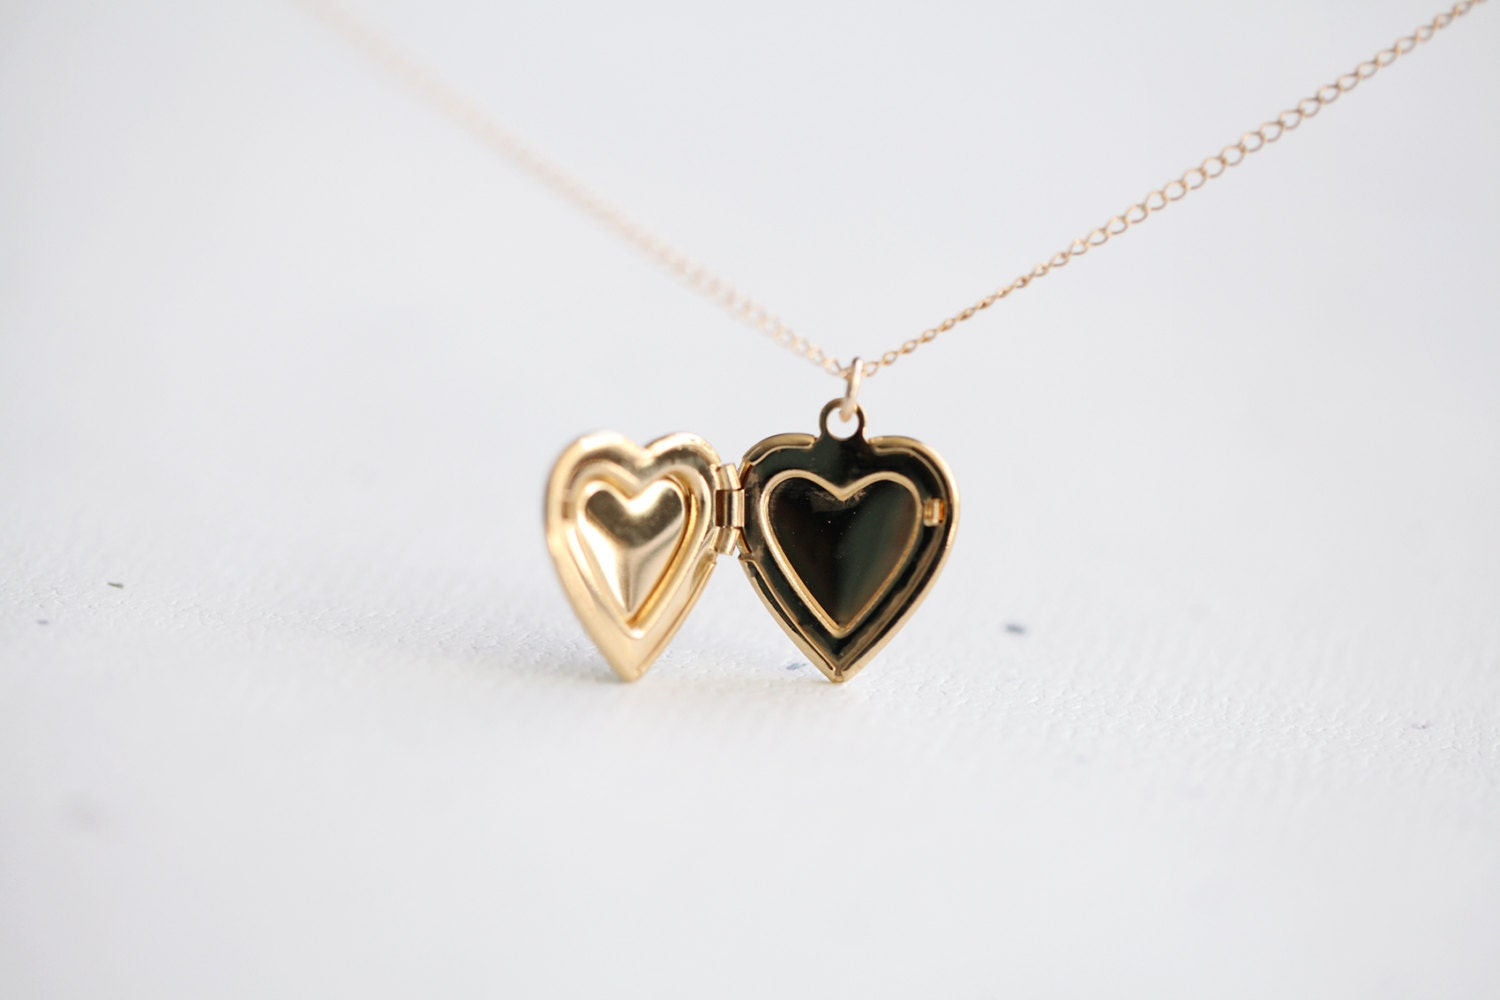 Heart Locket Necklace - 14k gold filled heart locket pendant necklace, gift for her, Valentines day